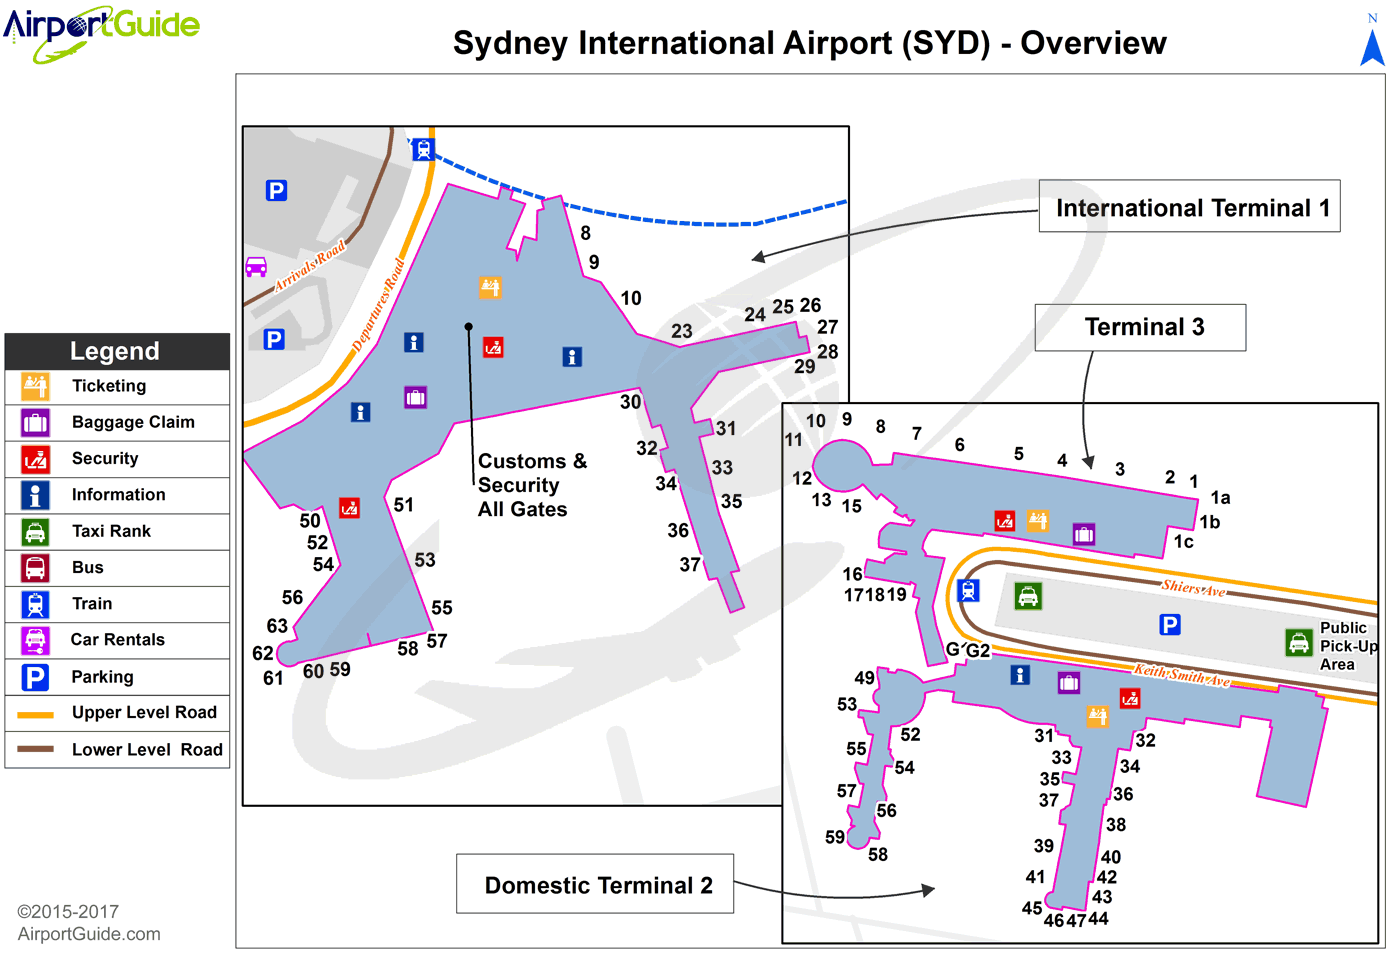 Sydney - Sydney Kingsford Smith International (SYD) Airport Terminal Map - Overview